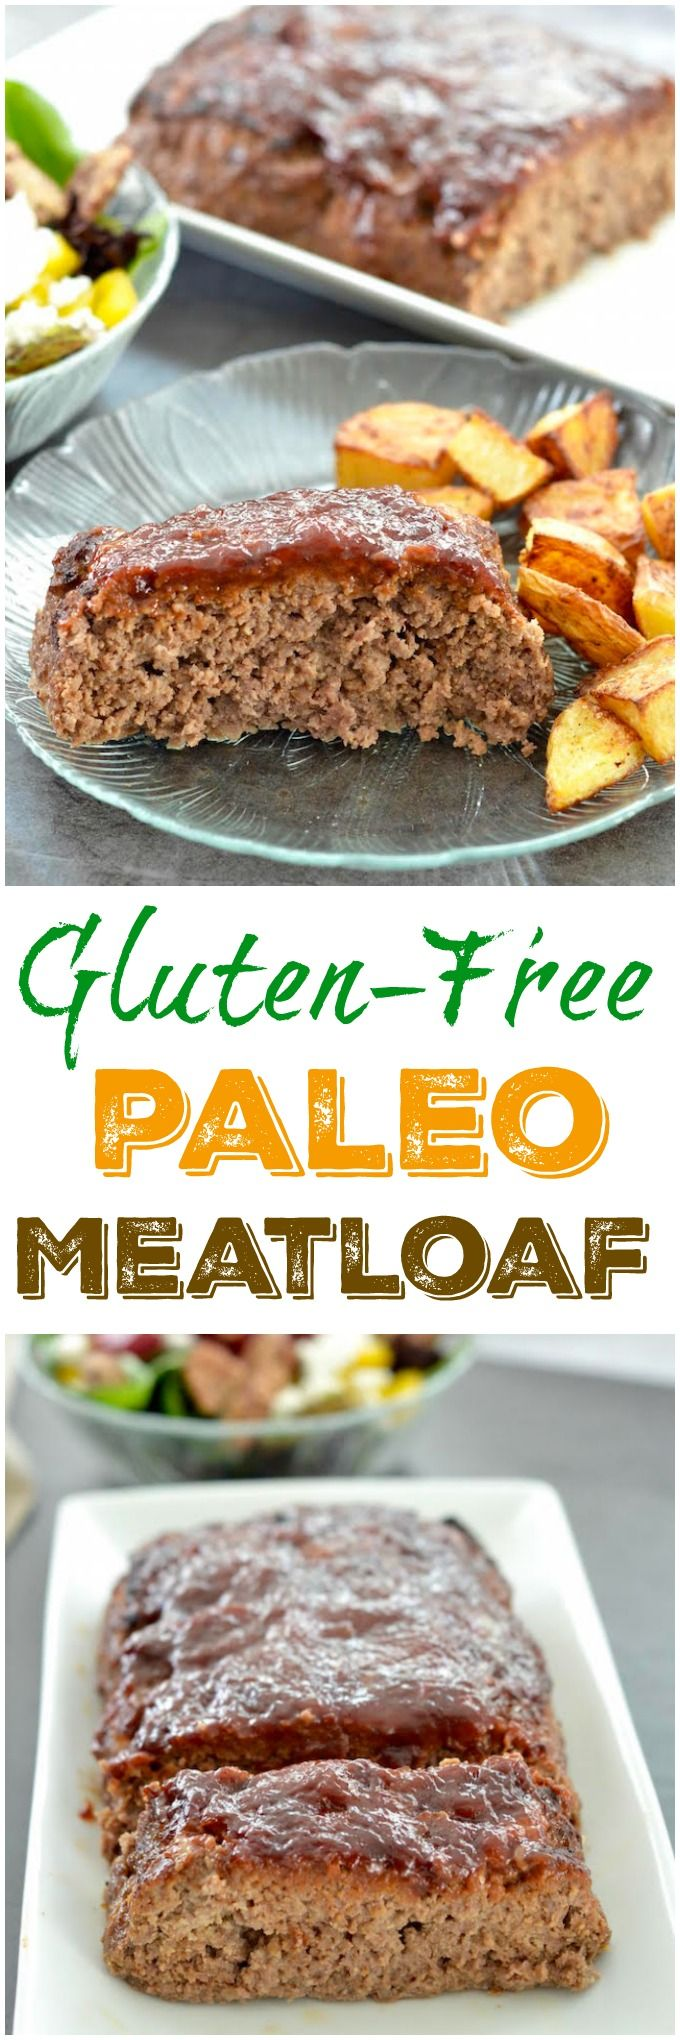 This Healthy Gluten-Free Paleo Meatloaf recipe is the perfect family dinner. Make it ahead of time and reheat on a busy night.